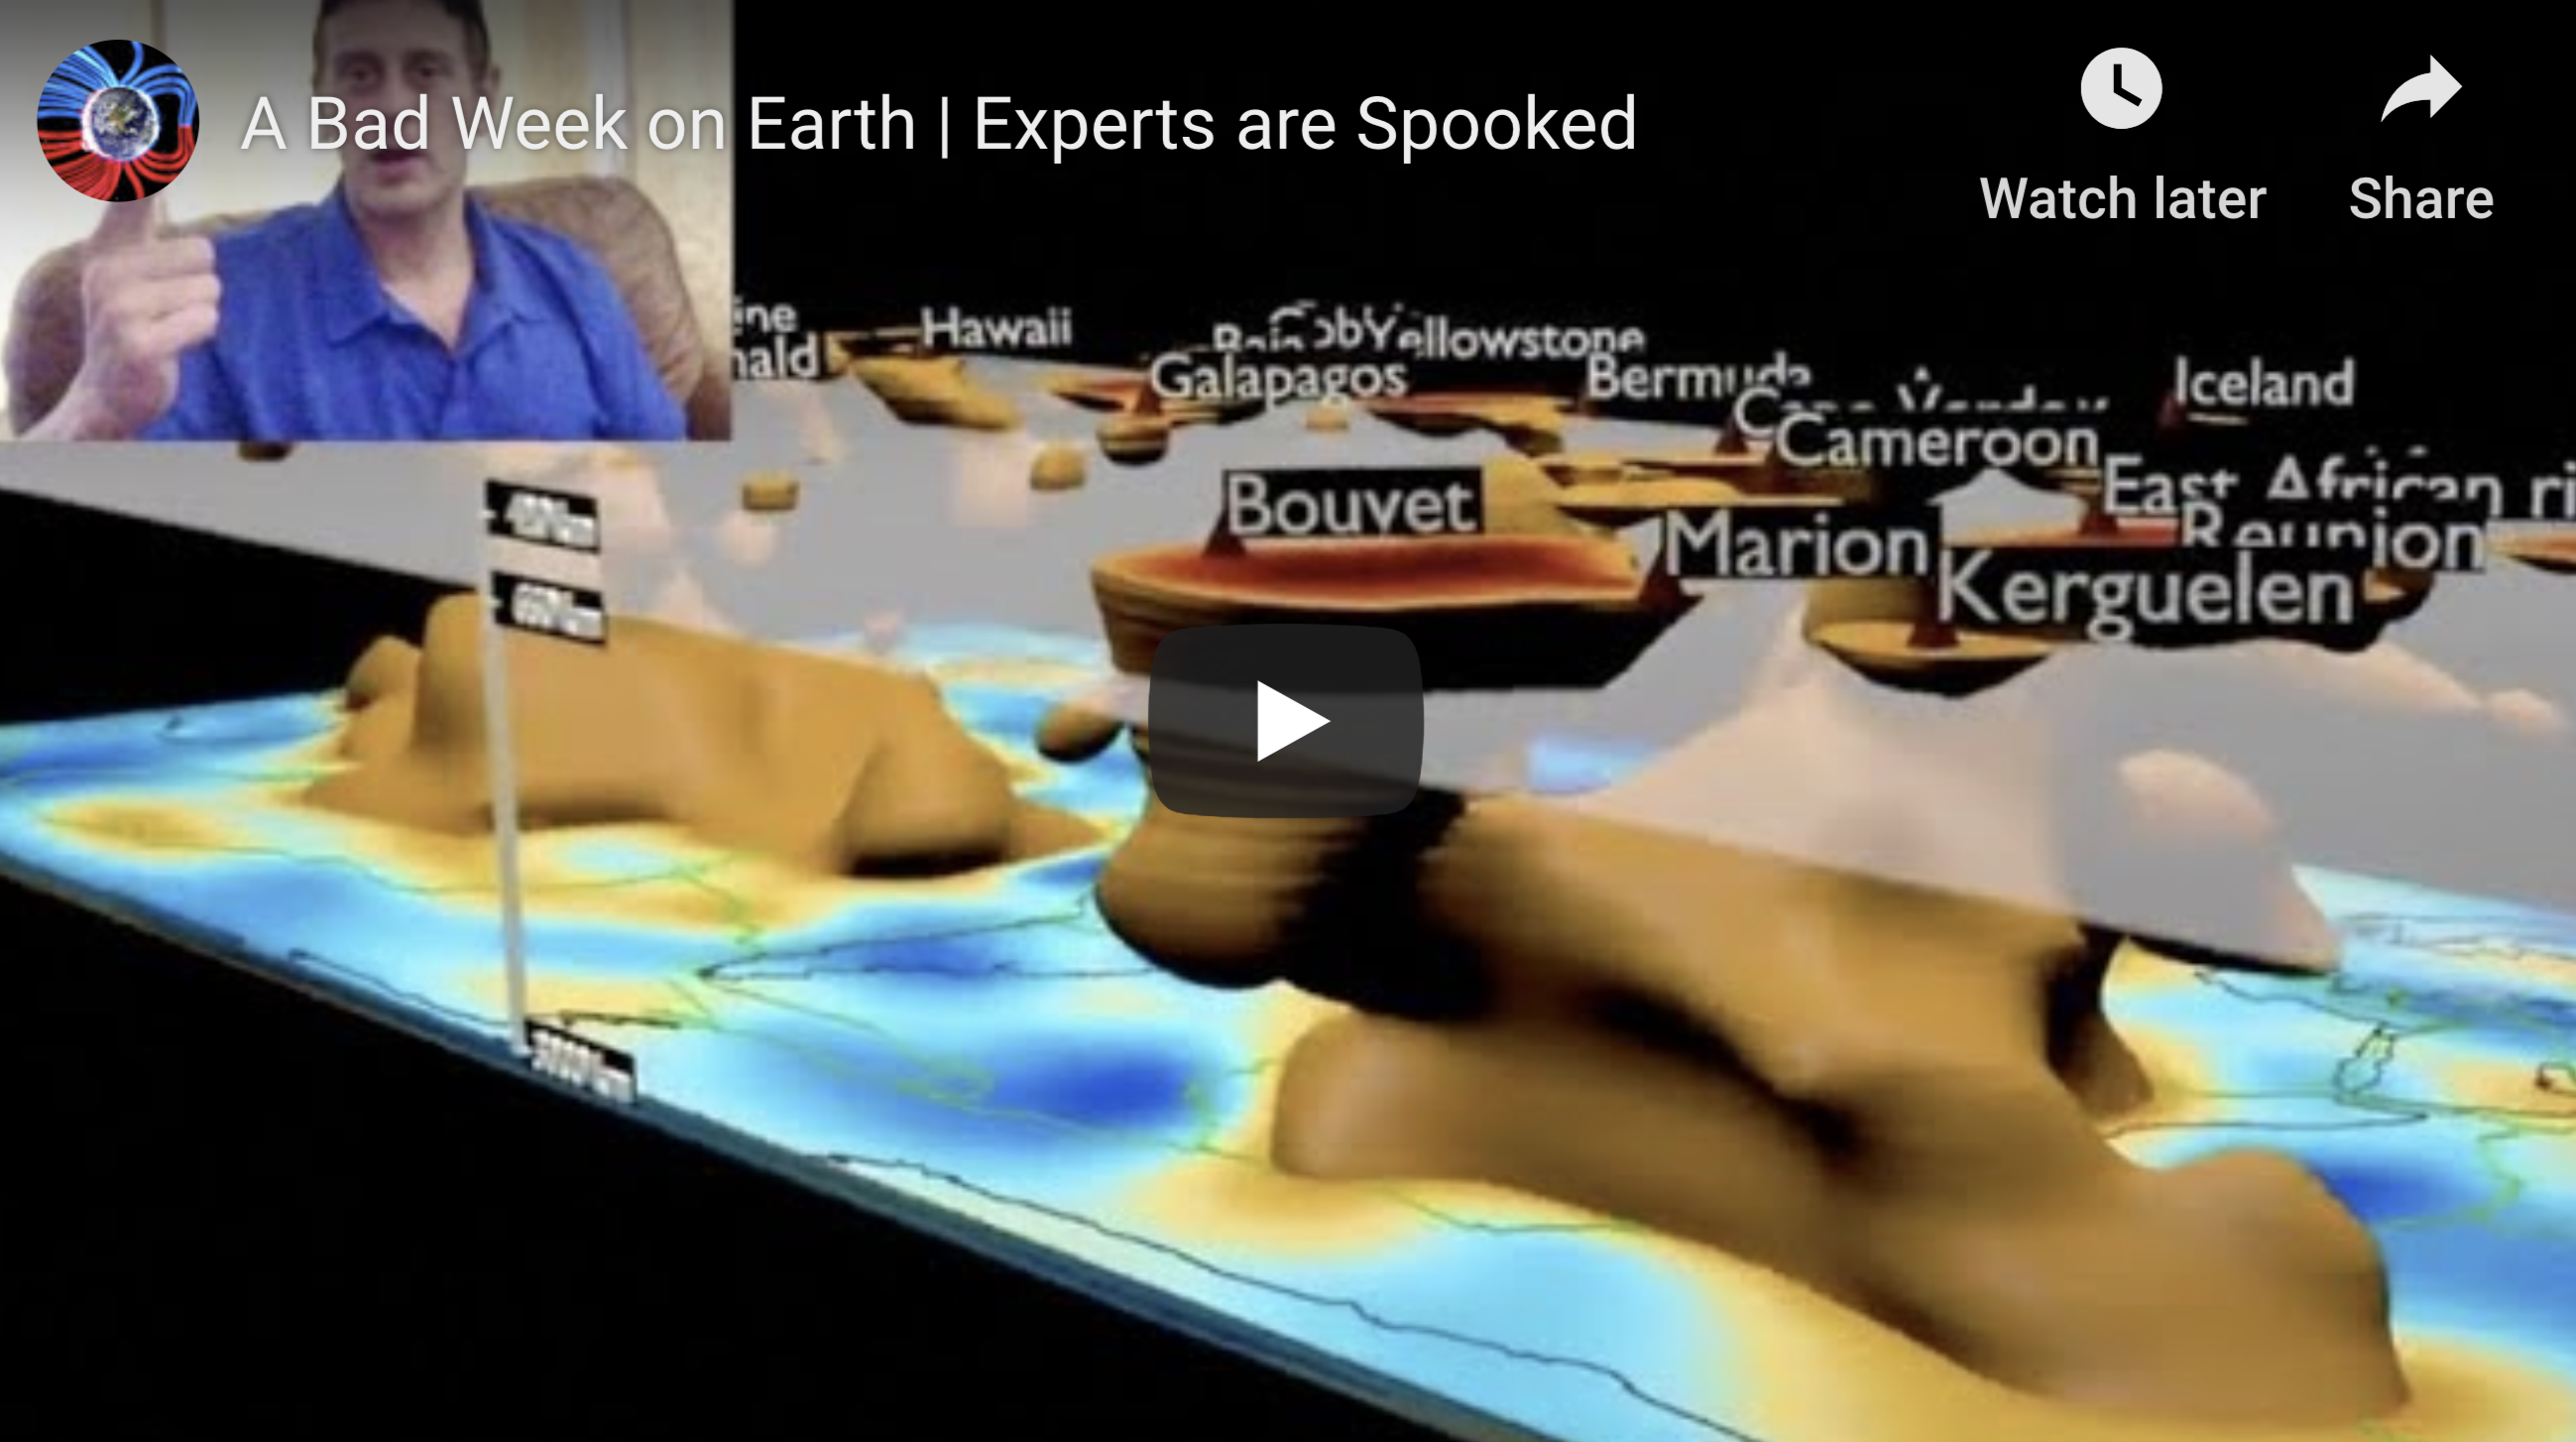 A Bad Week on Earth Experts are Spooked 1 22 2020